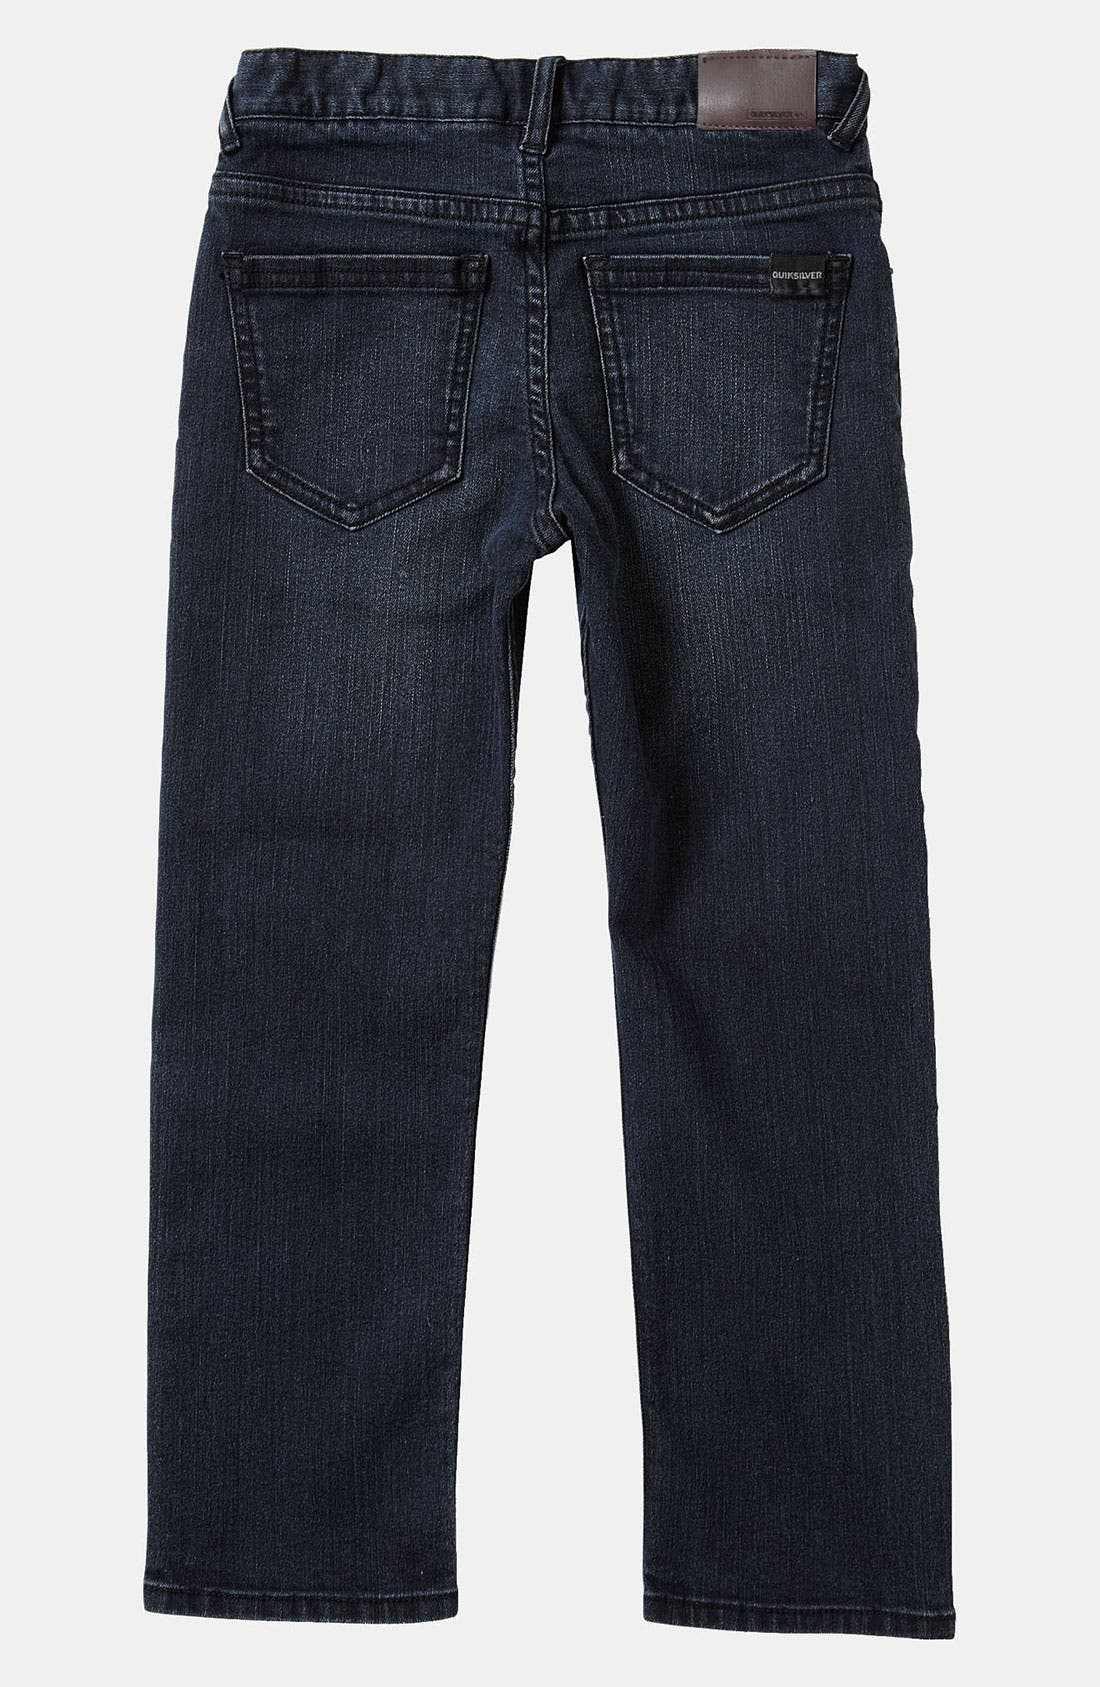 Alternate Image 1 Selected - Quiksilver 'Distortion' Jeans (Toddler)